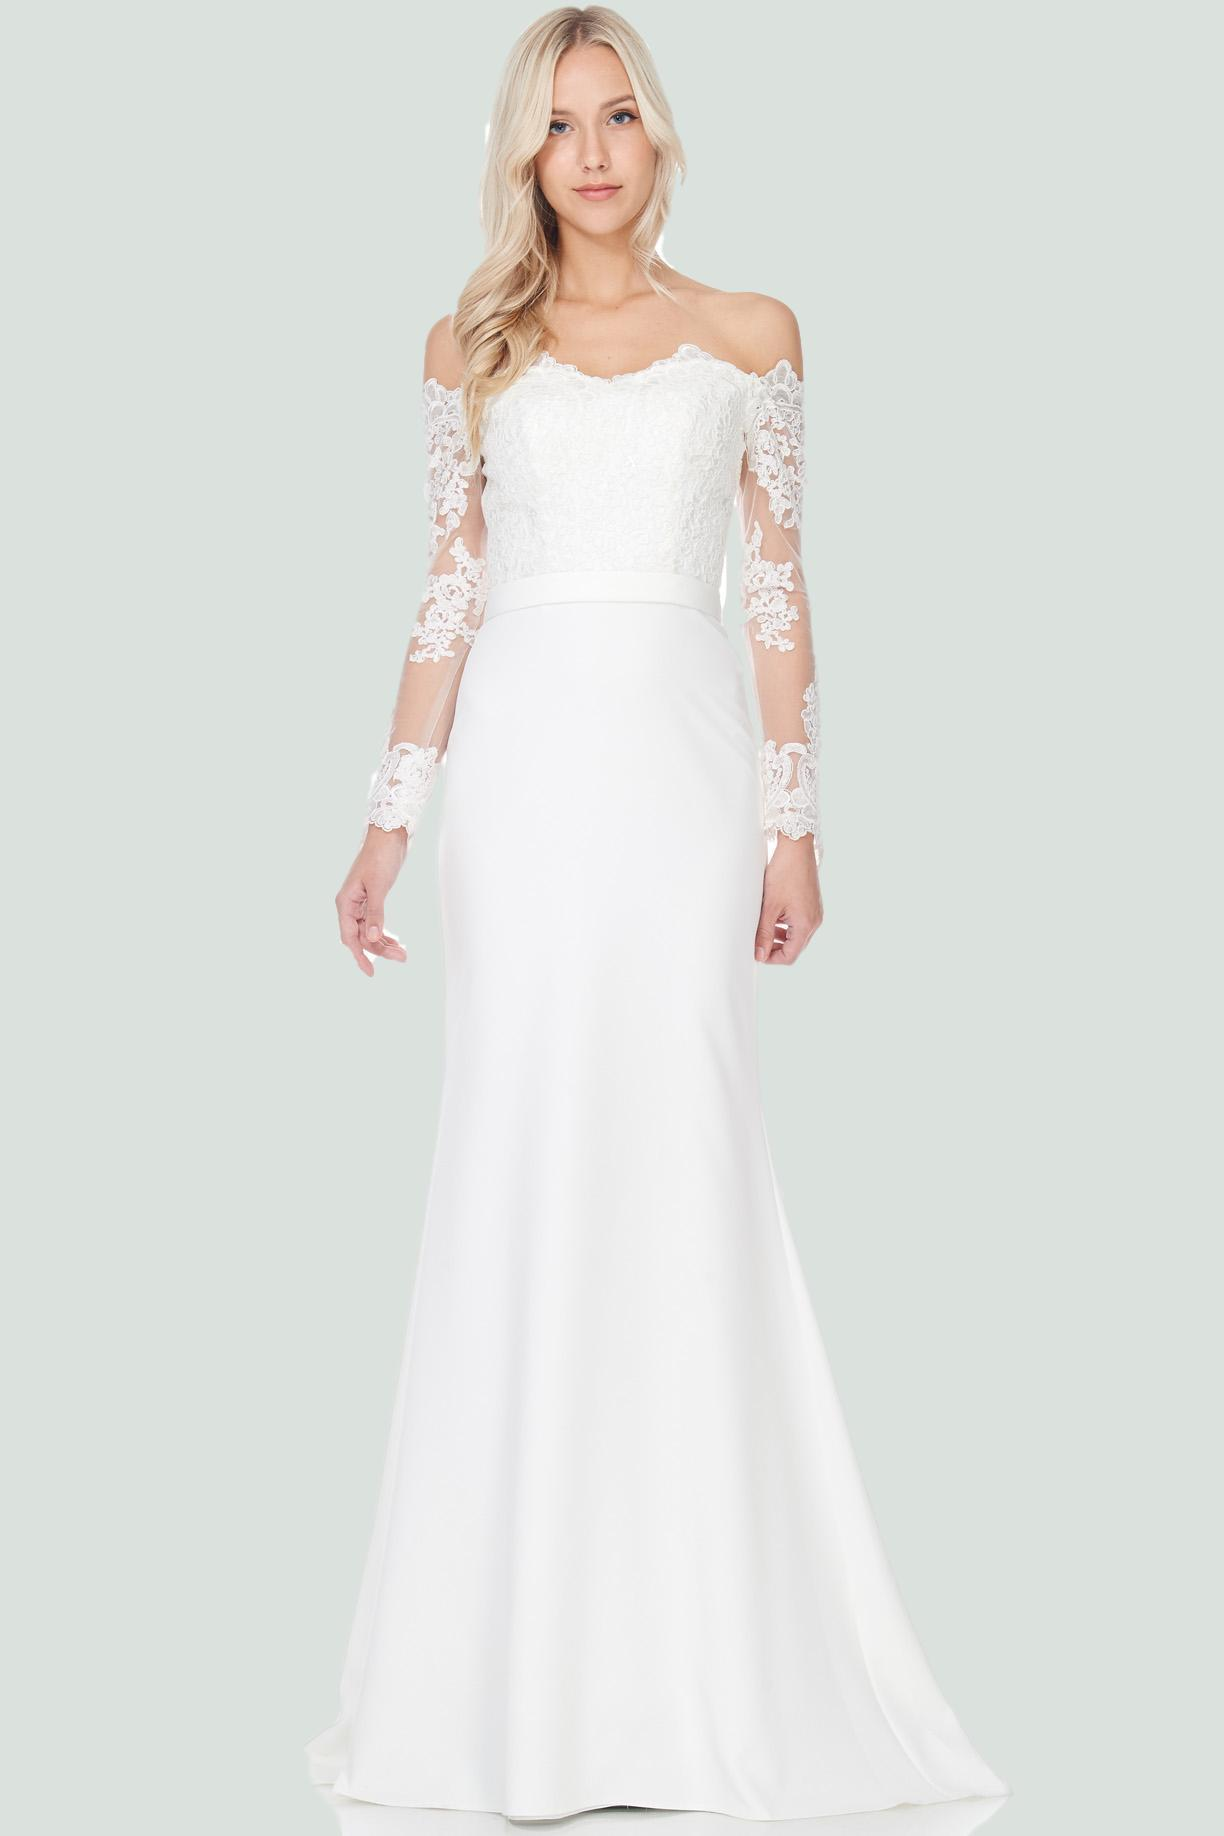 Off the shoulder sheath wedding dress